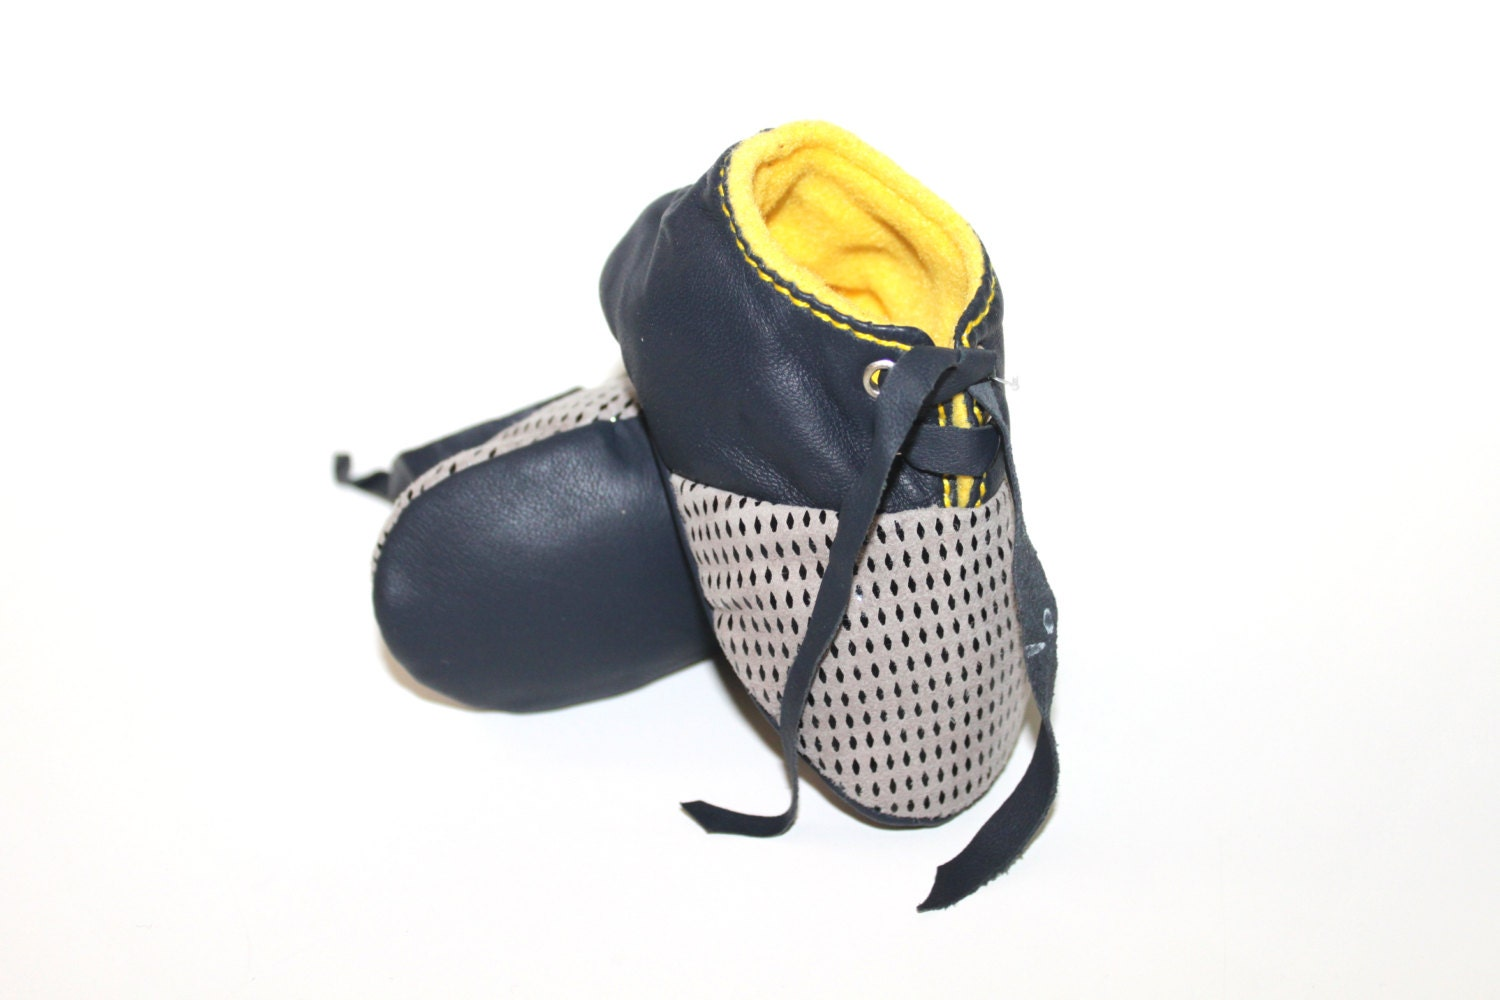 6 12 Months Slippers Baby Shoes Lamb Leather Yellow Dark